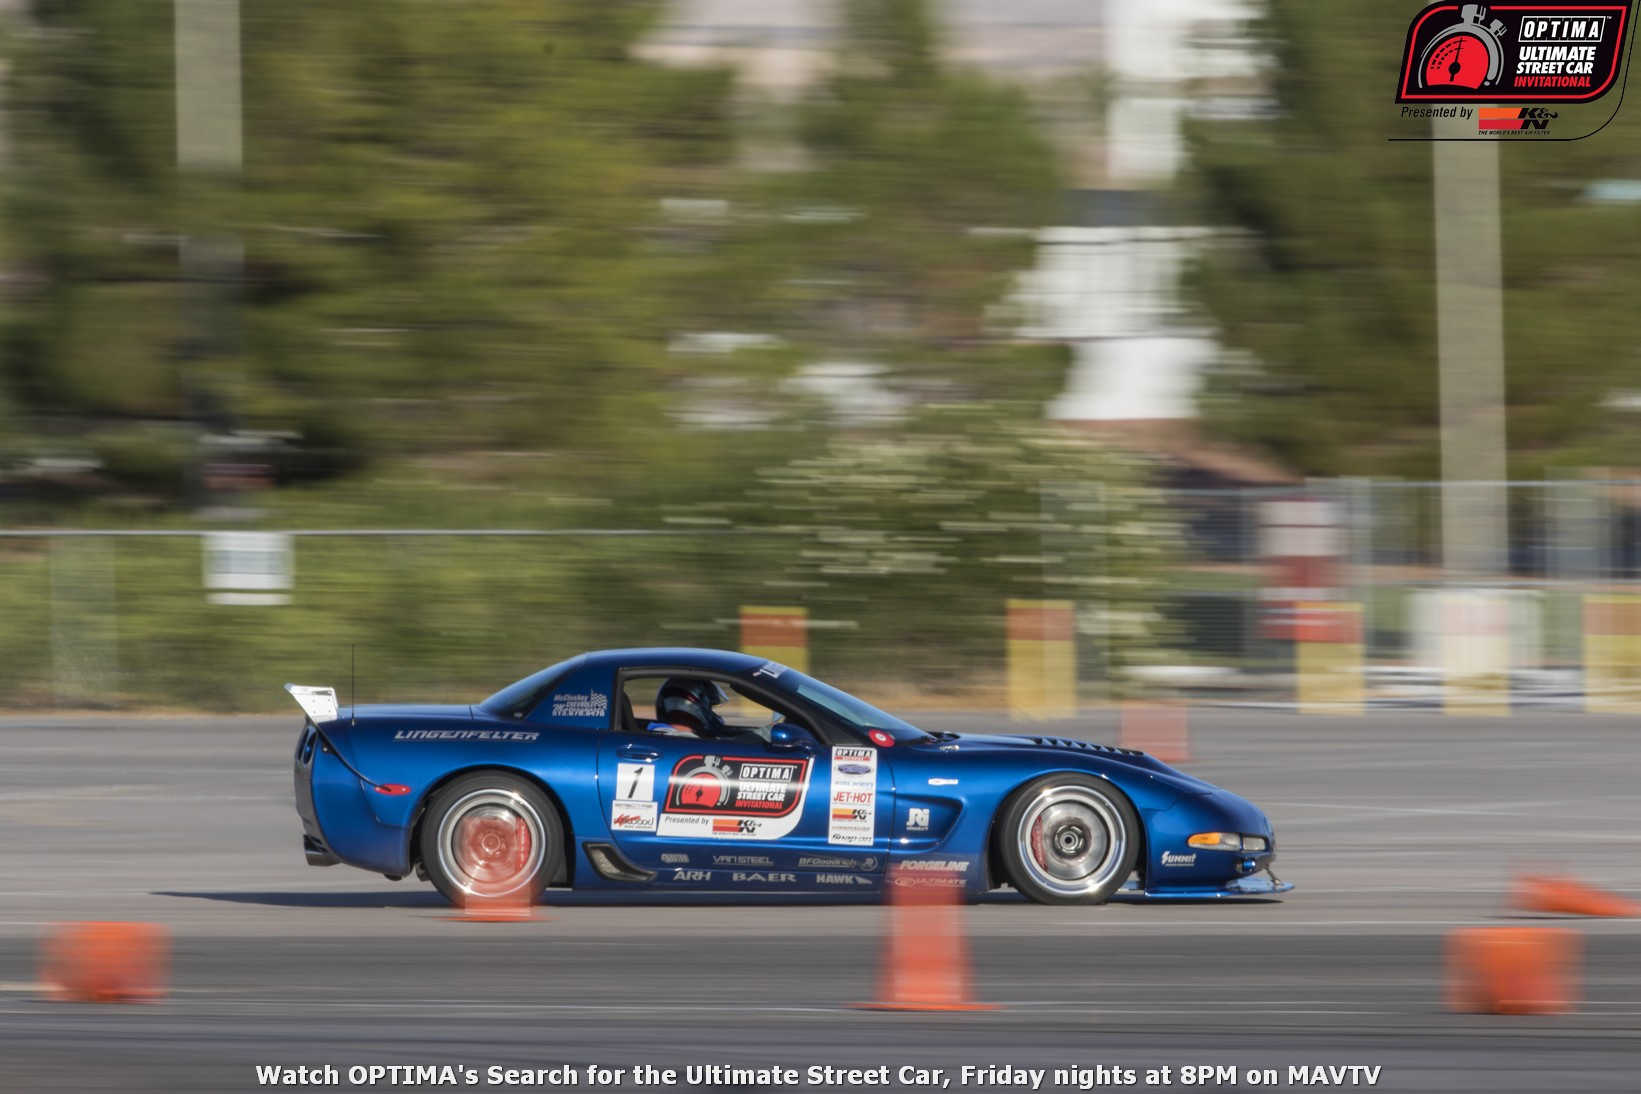 How Danny Popp Won the OPTIMA Ultimate Street Car Invitational for a Third Time